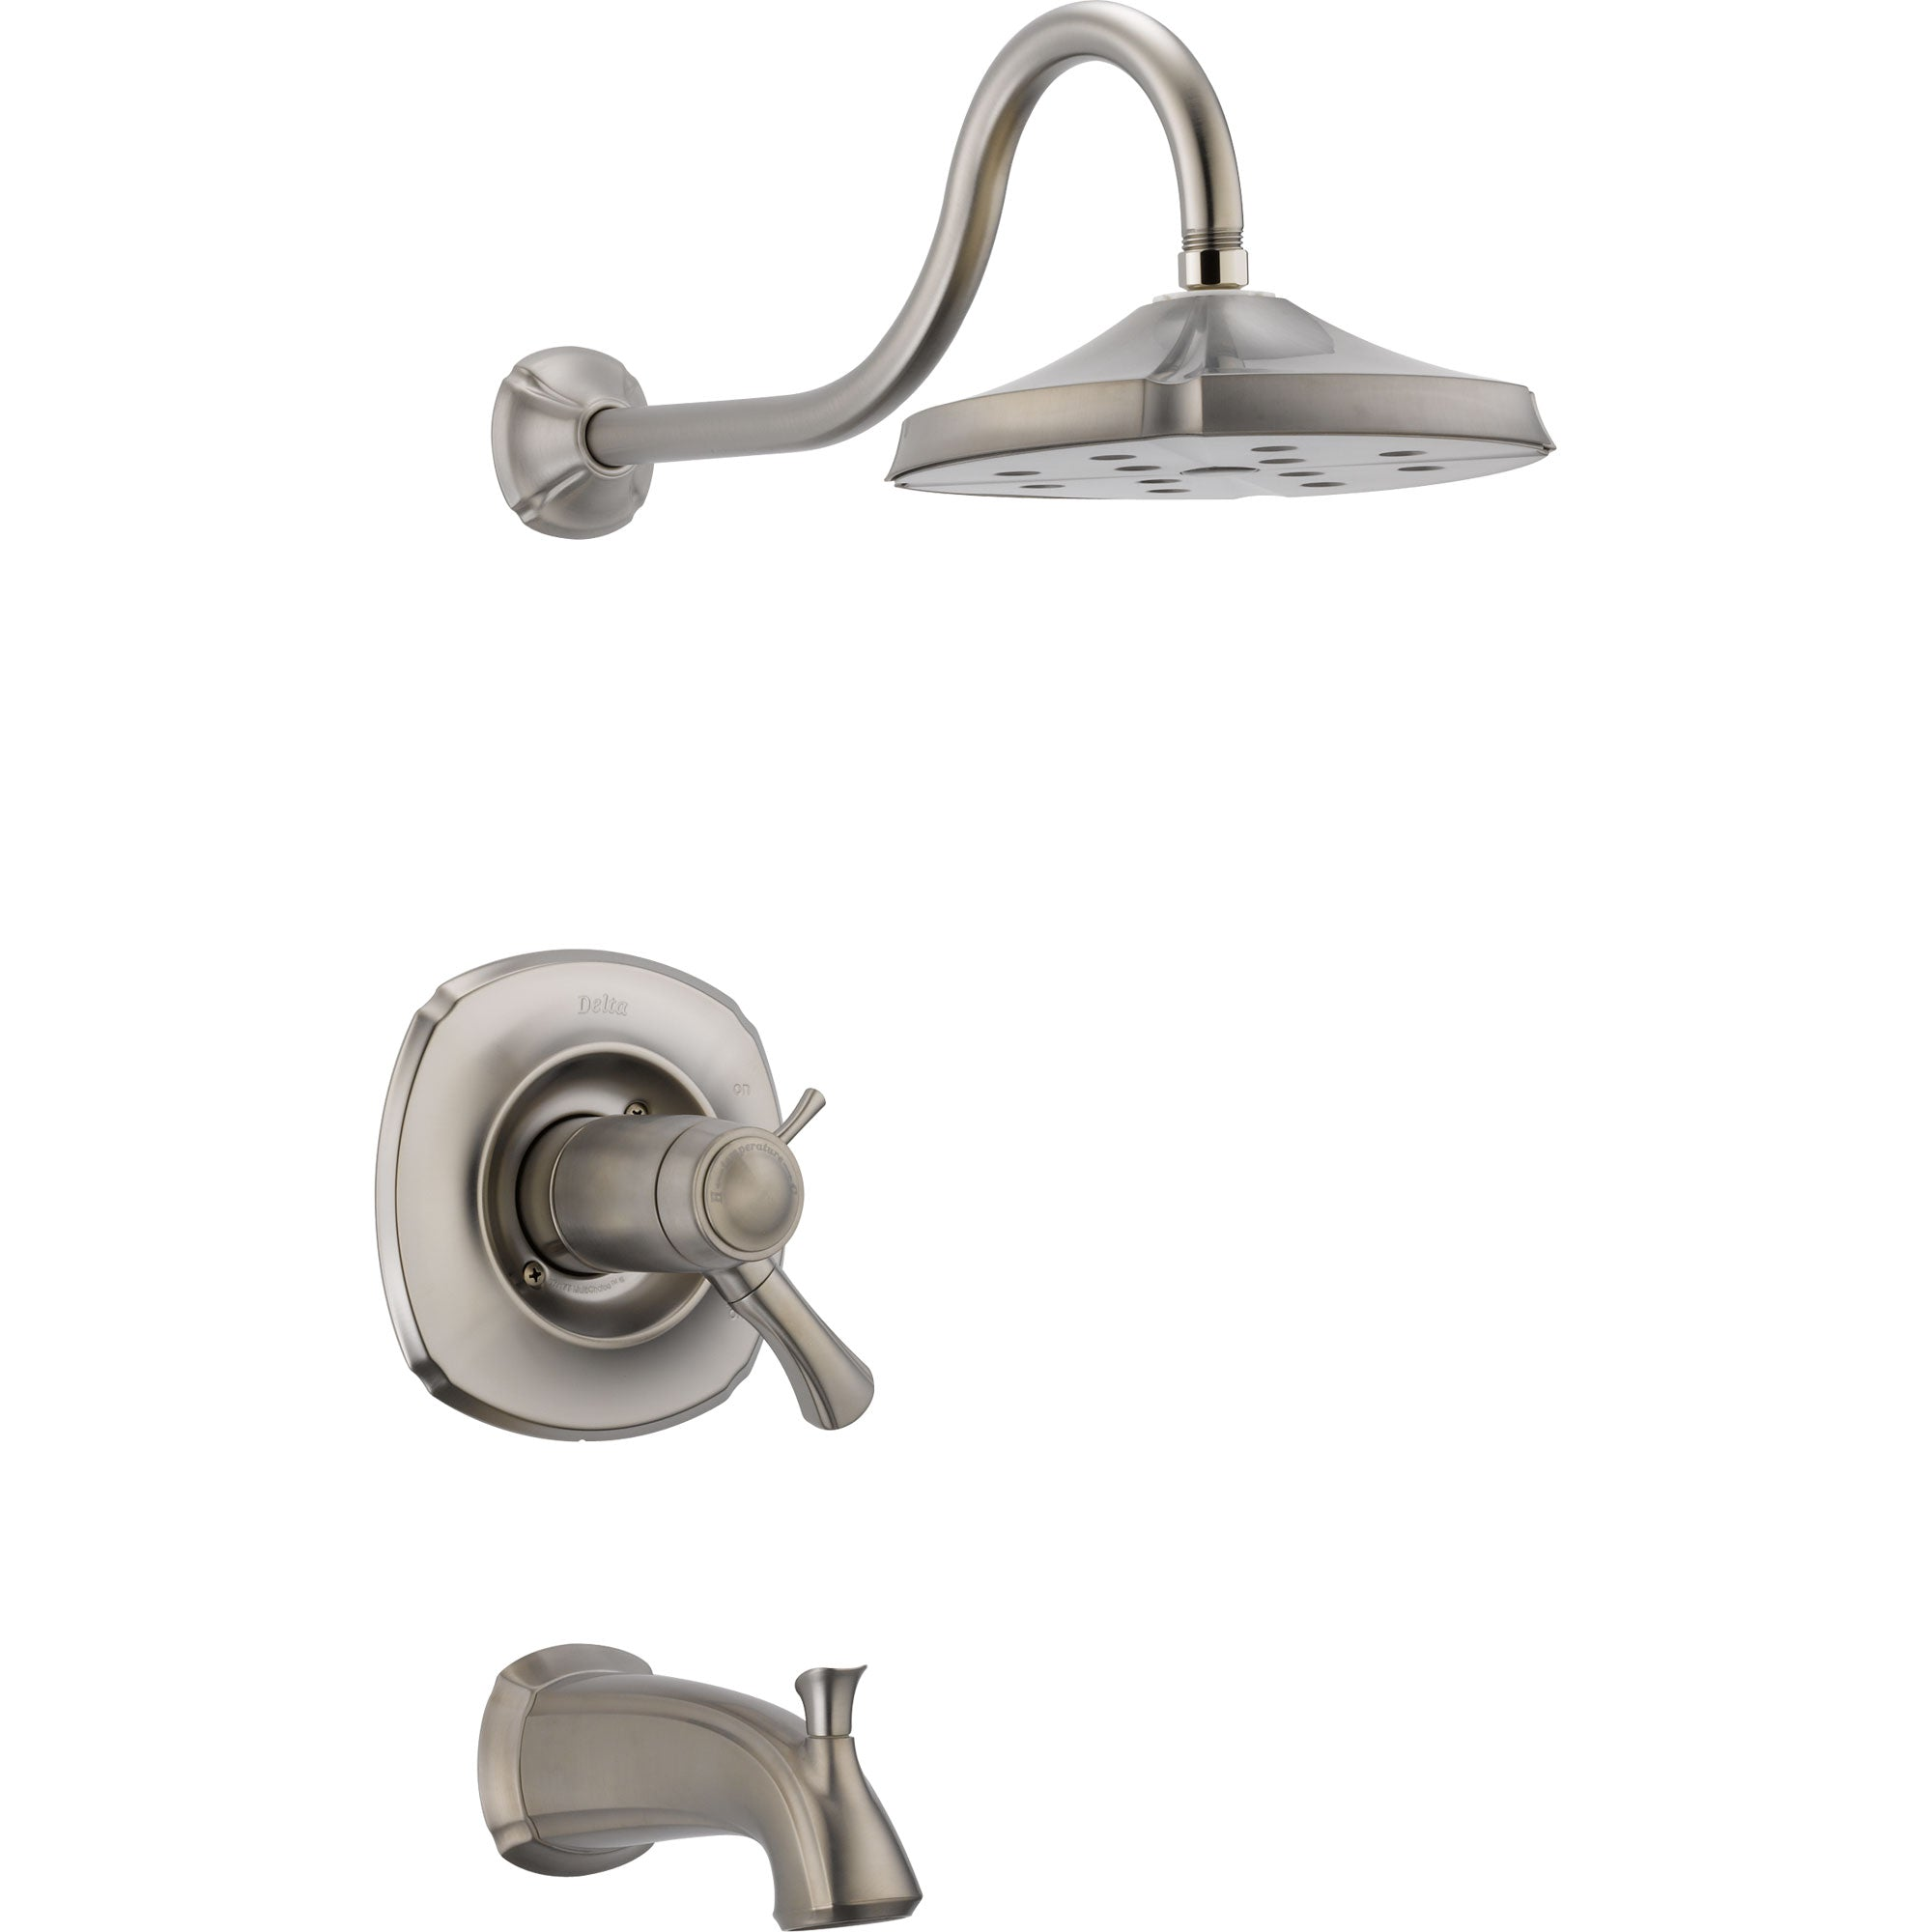 Delta Addison Stainless Steel Finish Thermostatic Tub/Shower Trim Kit 476444